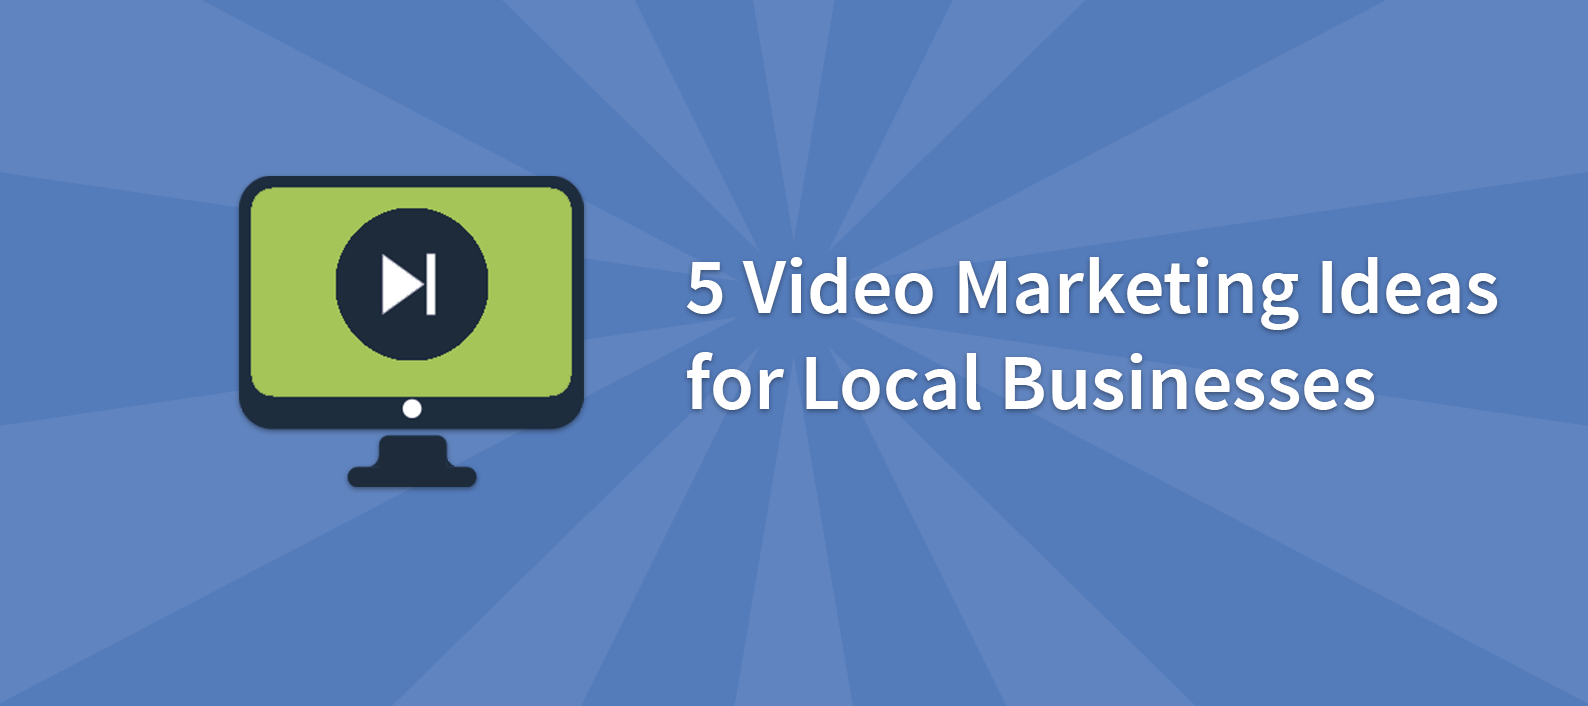 5 Video Marketing Ideas for Local Businesses - BrightLocal